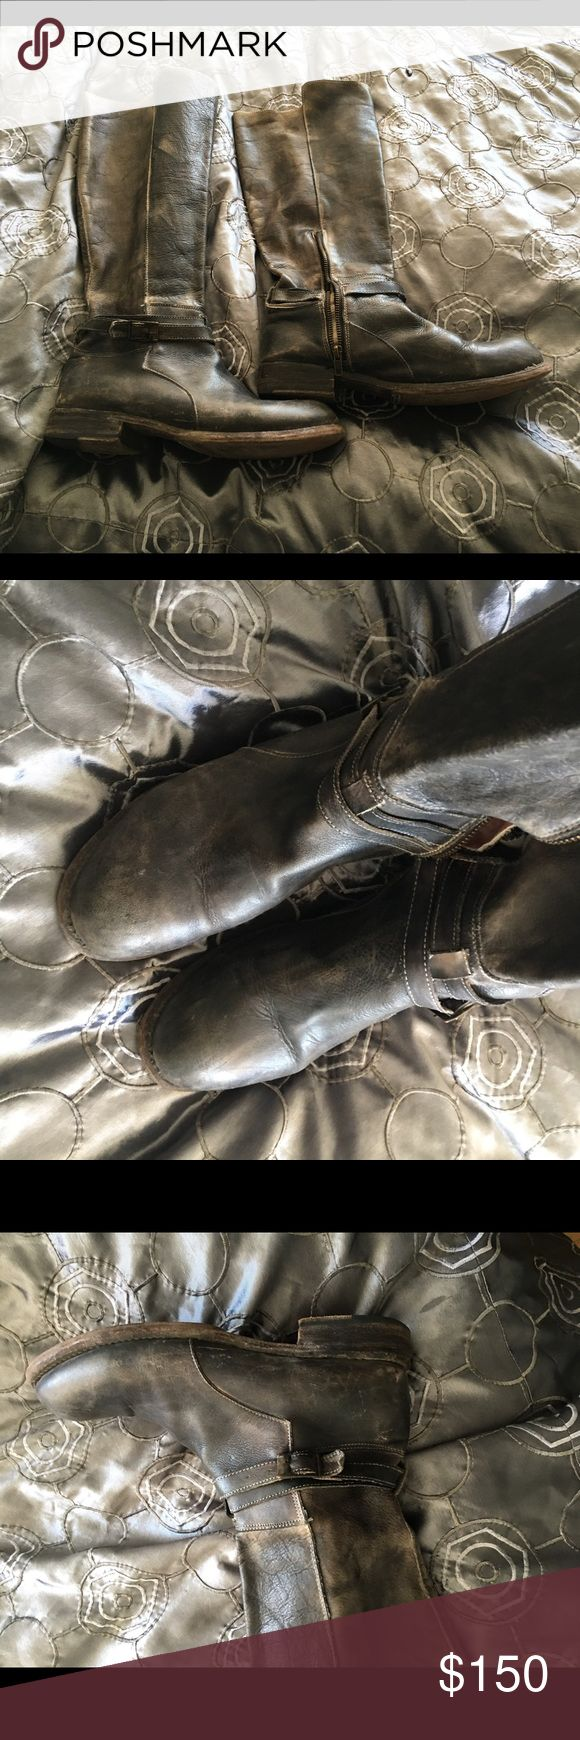 Bed Stu Boots Bed Stu Boots. Size 10. Worn about a dozen times.   These are a worn Grey/black color. In amazing shape!!  These are to the knee. Bed Stu Shoes Combat & Moto Boots